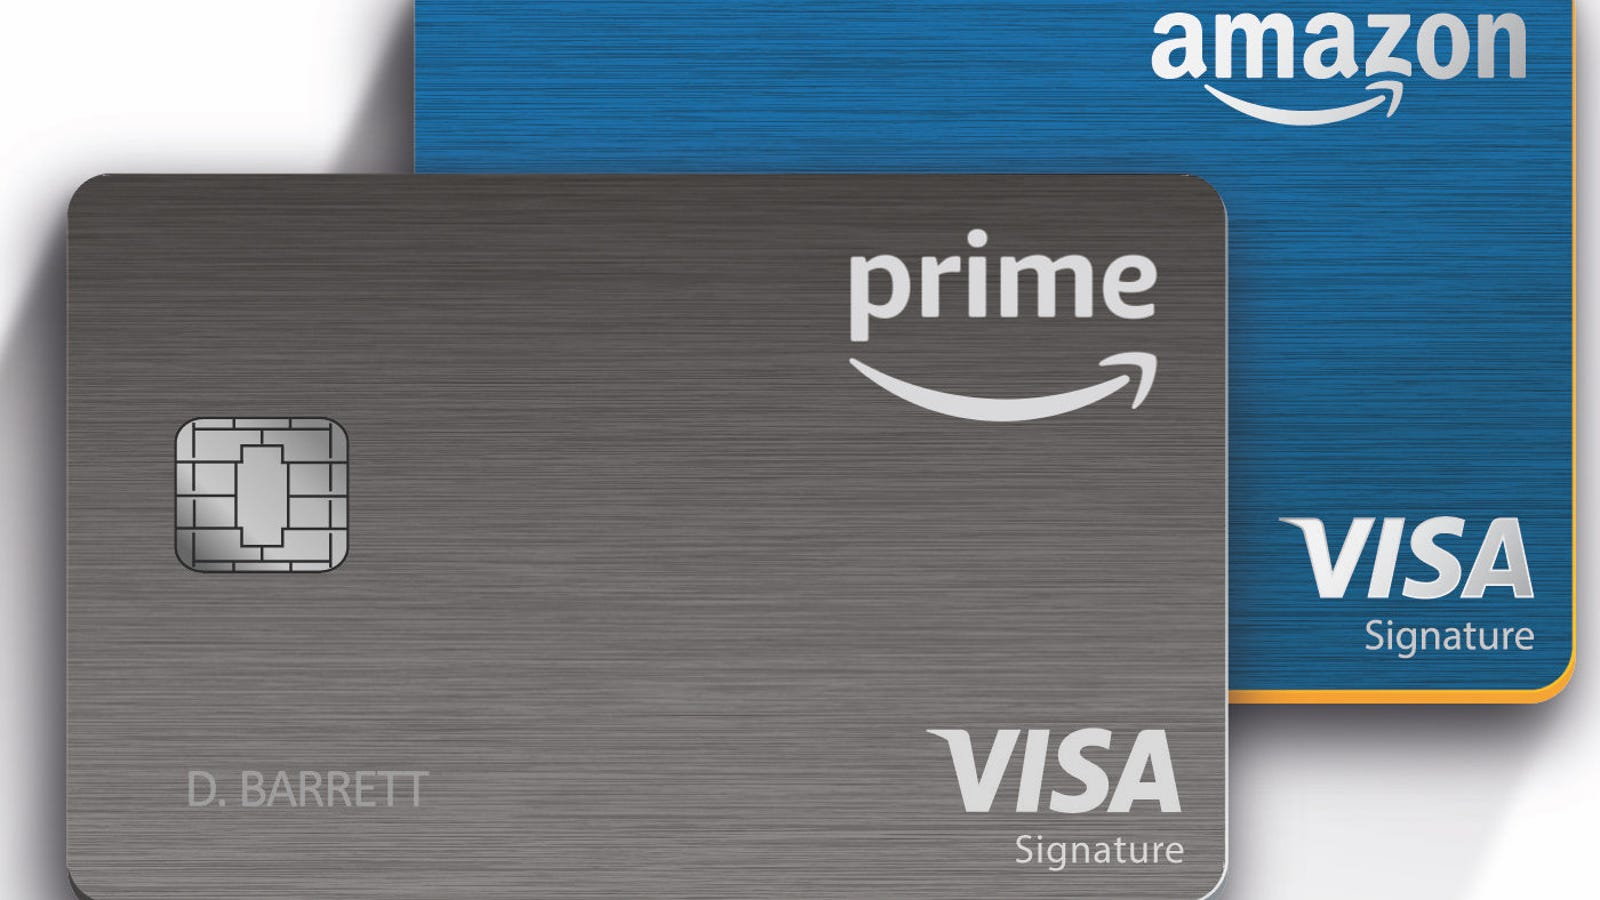 Amazon and Chase Will Not Give Me a Straight Answer About What They Do With My Credit Card Data